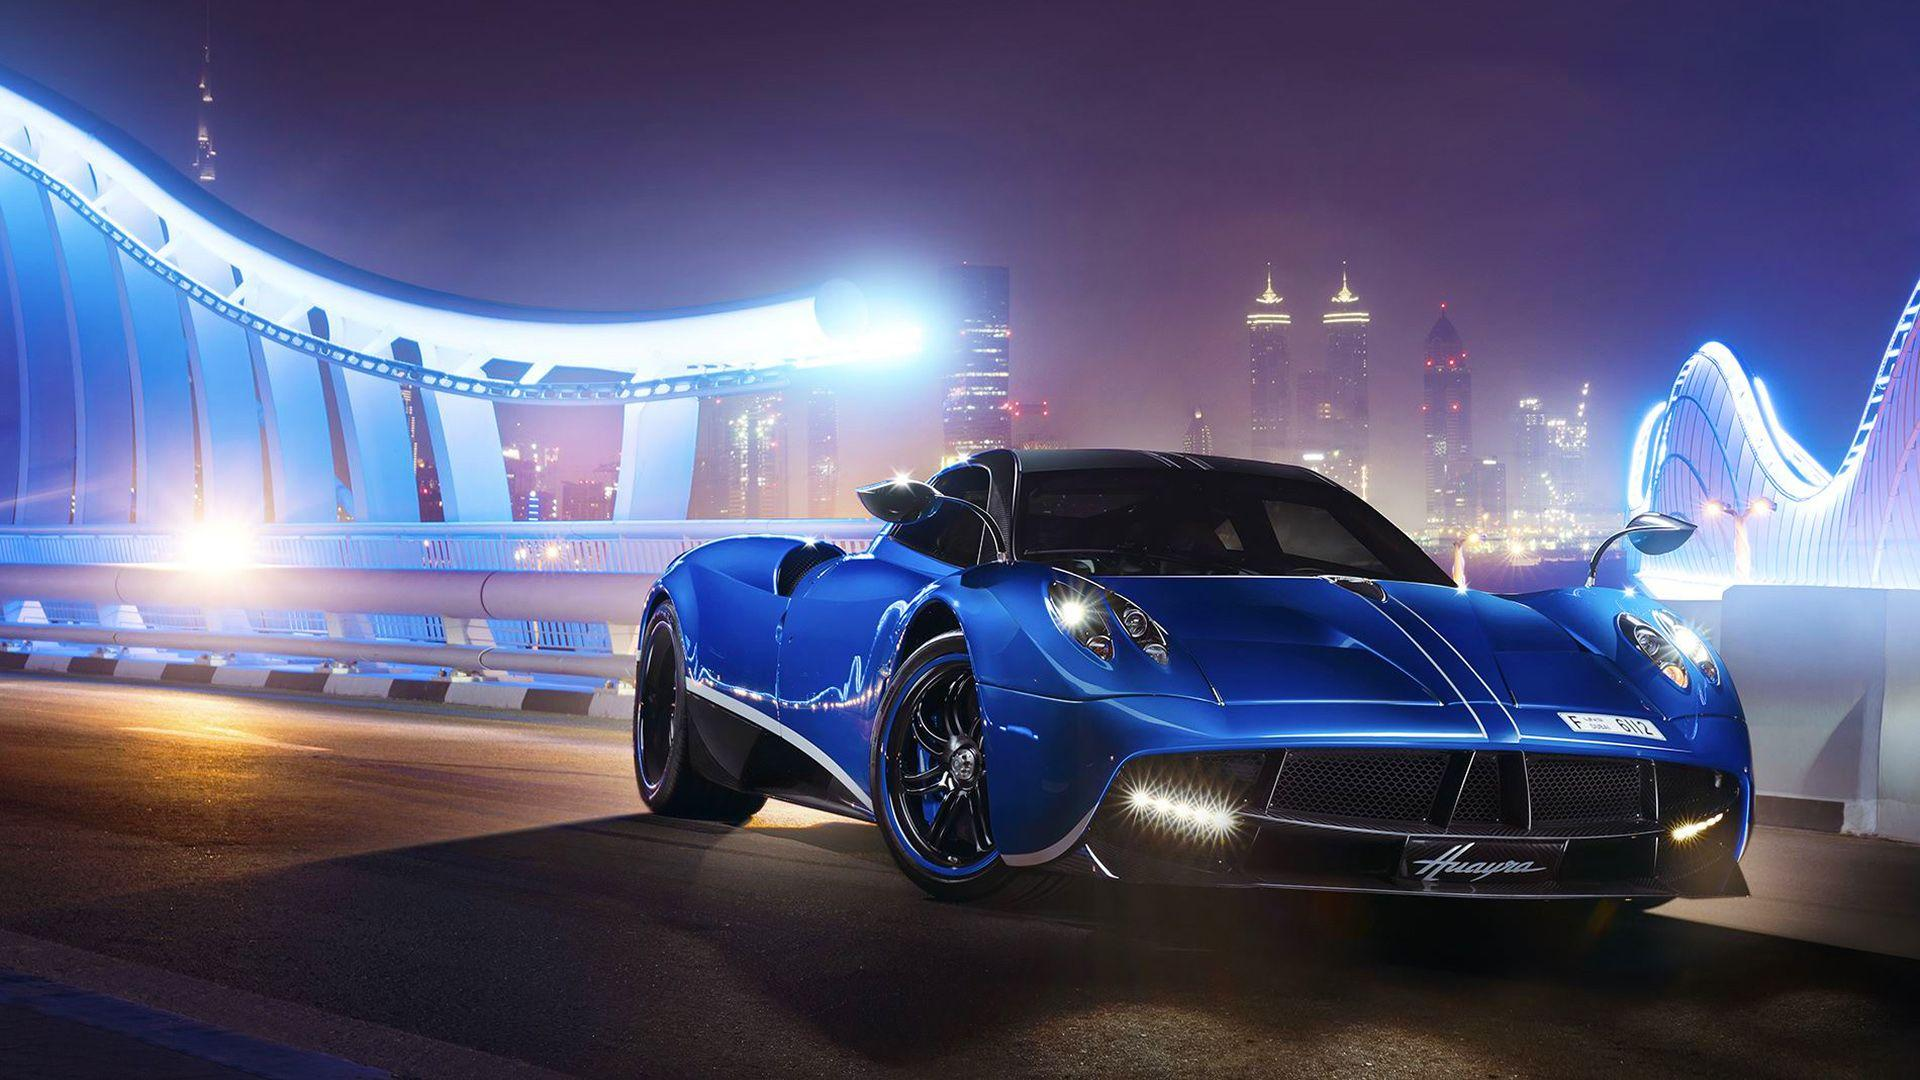 Pagani Huayra Wallpapers